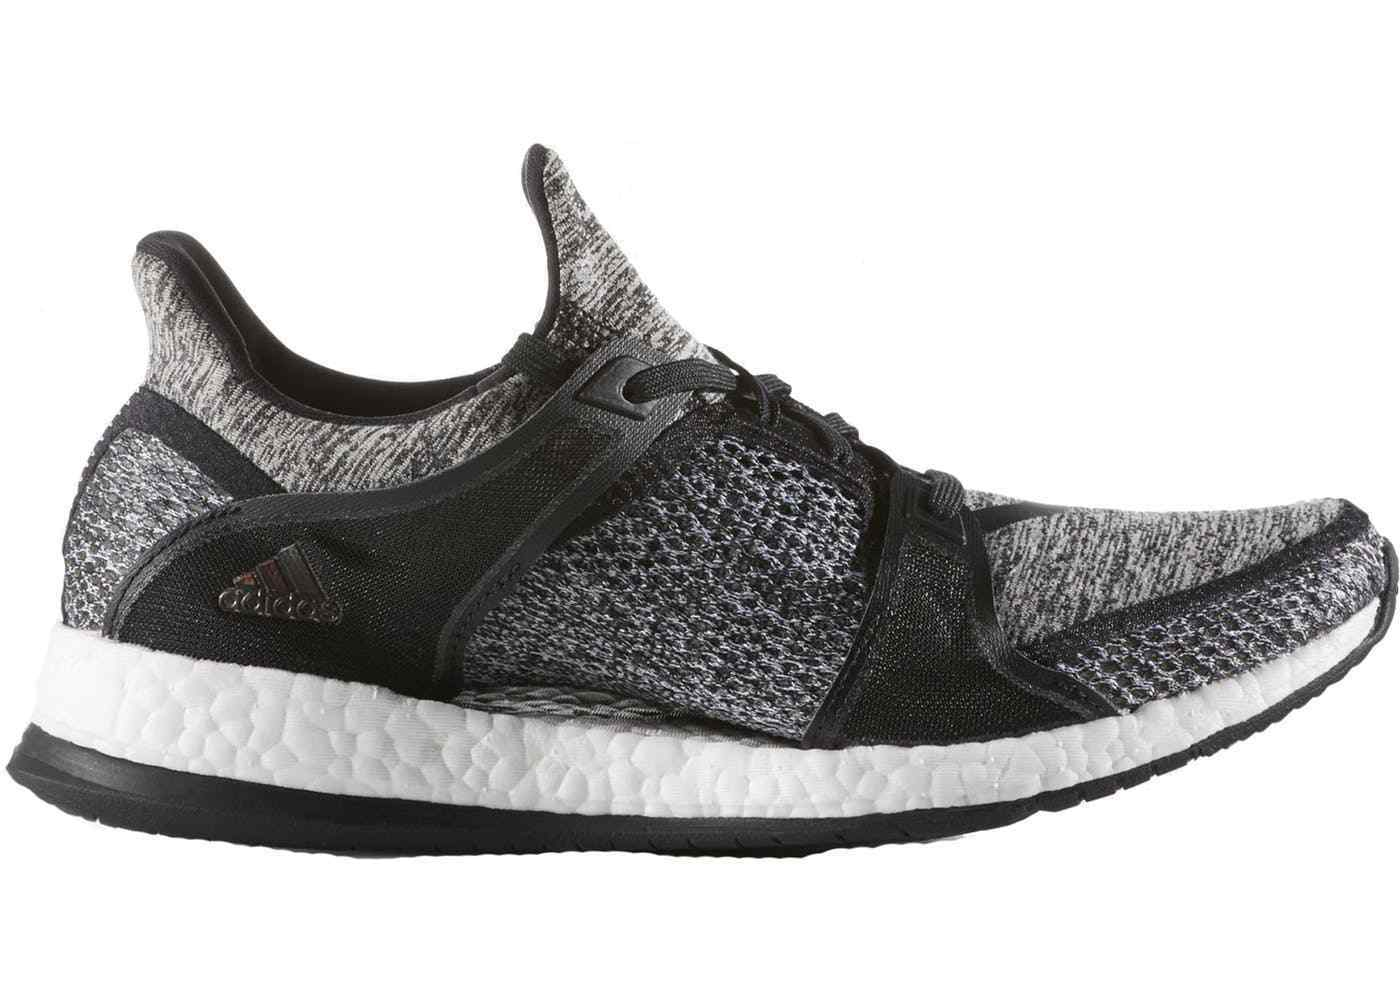 Women's adidas Pure Boost x Reigning Champ Oreo B39255 Size 9.5 New in Box